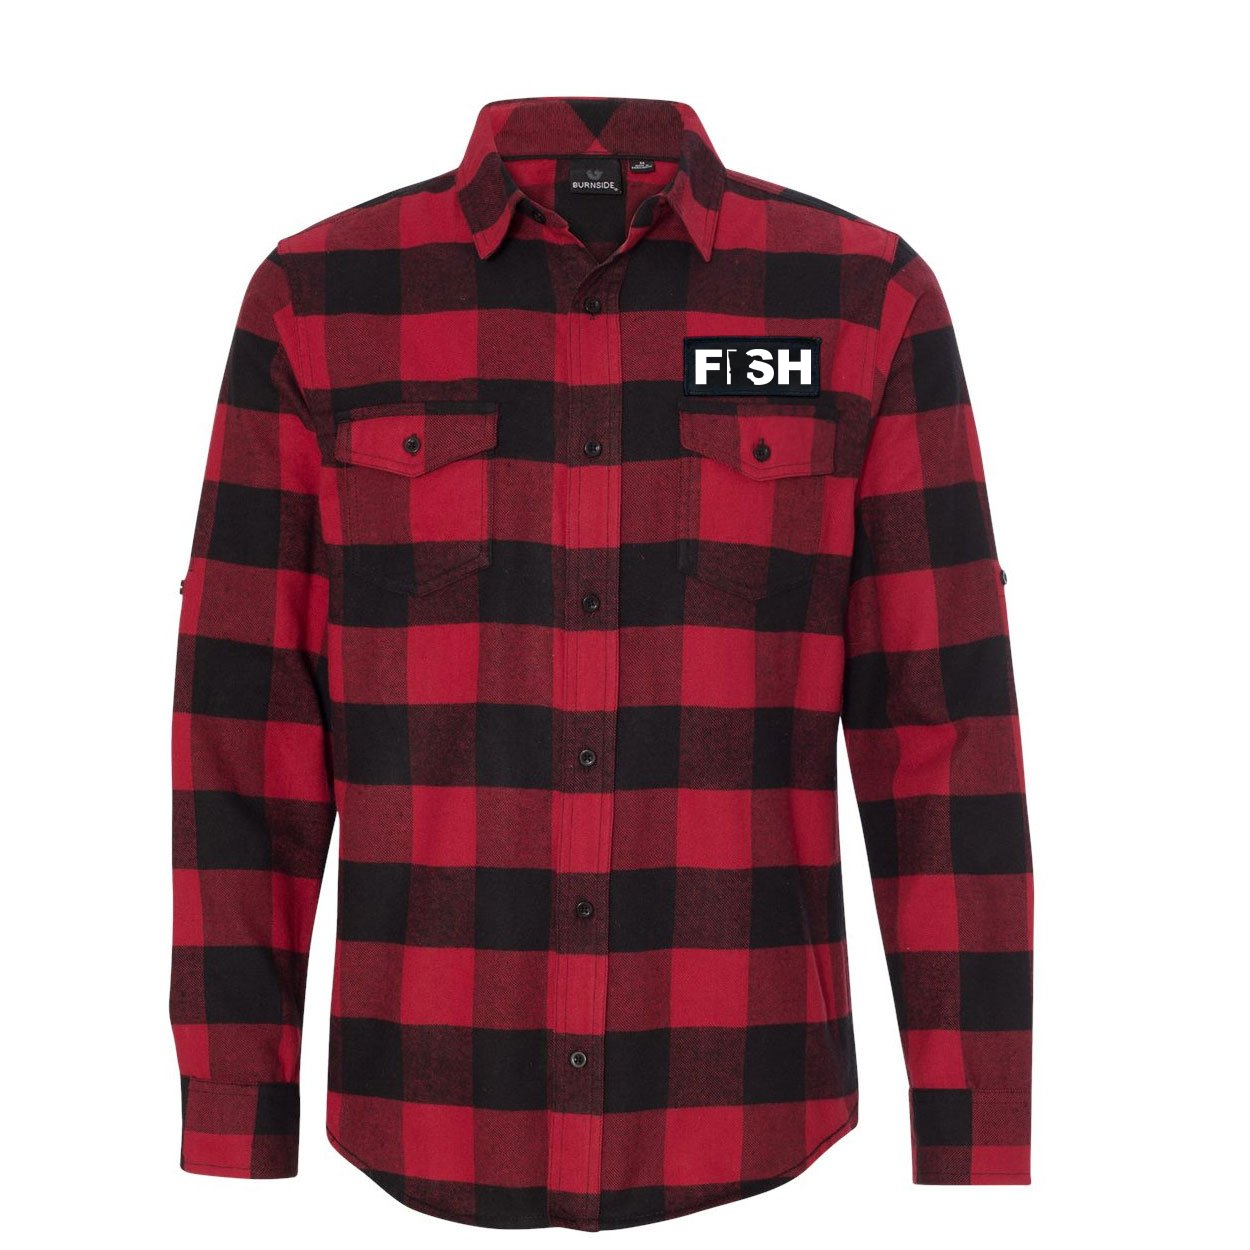 Fish Minnesota Classic Unisex Long Sleeve Woven Patch Flannel Shirt Red/Black Buffalo (White Logo)